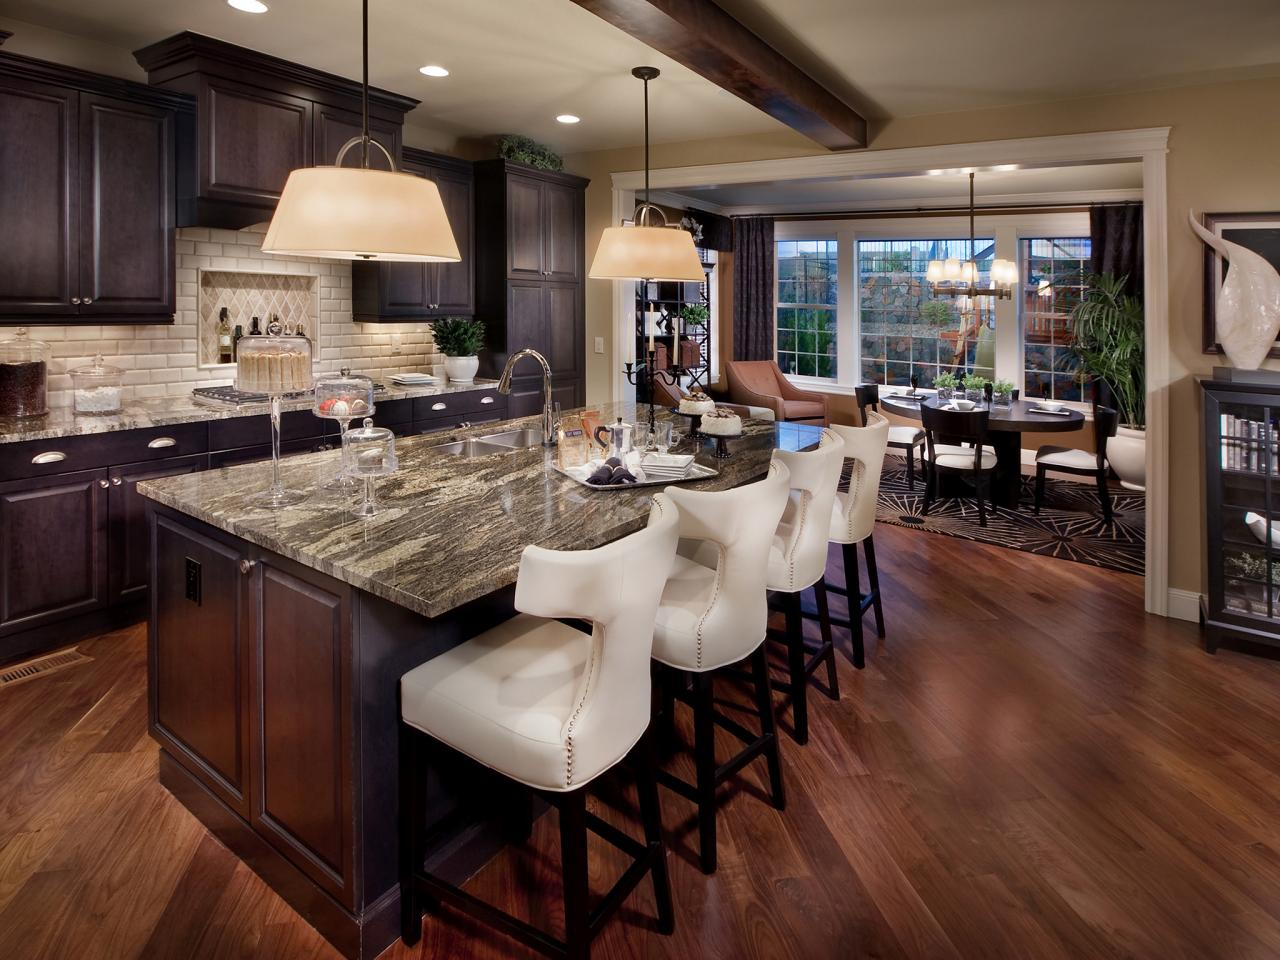 Black kitchen islands kitchen designs choose kitchen for Kitchen remodel ideas pictures